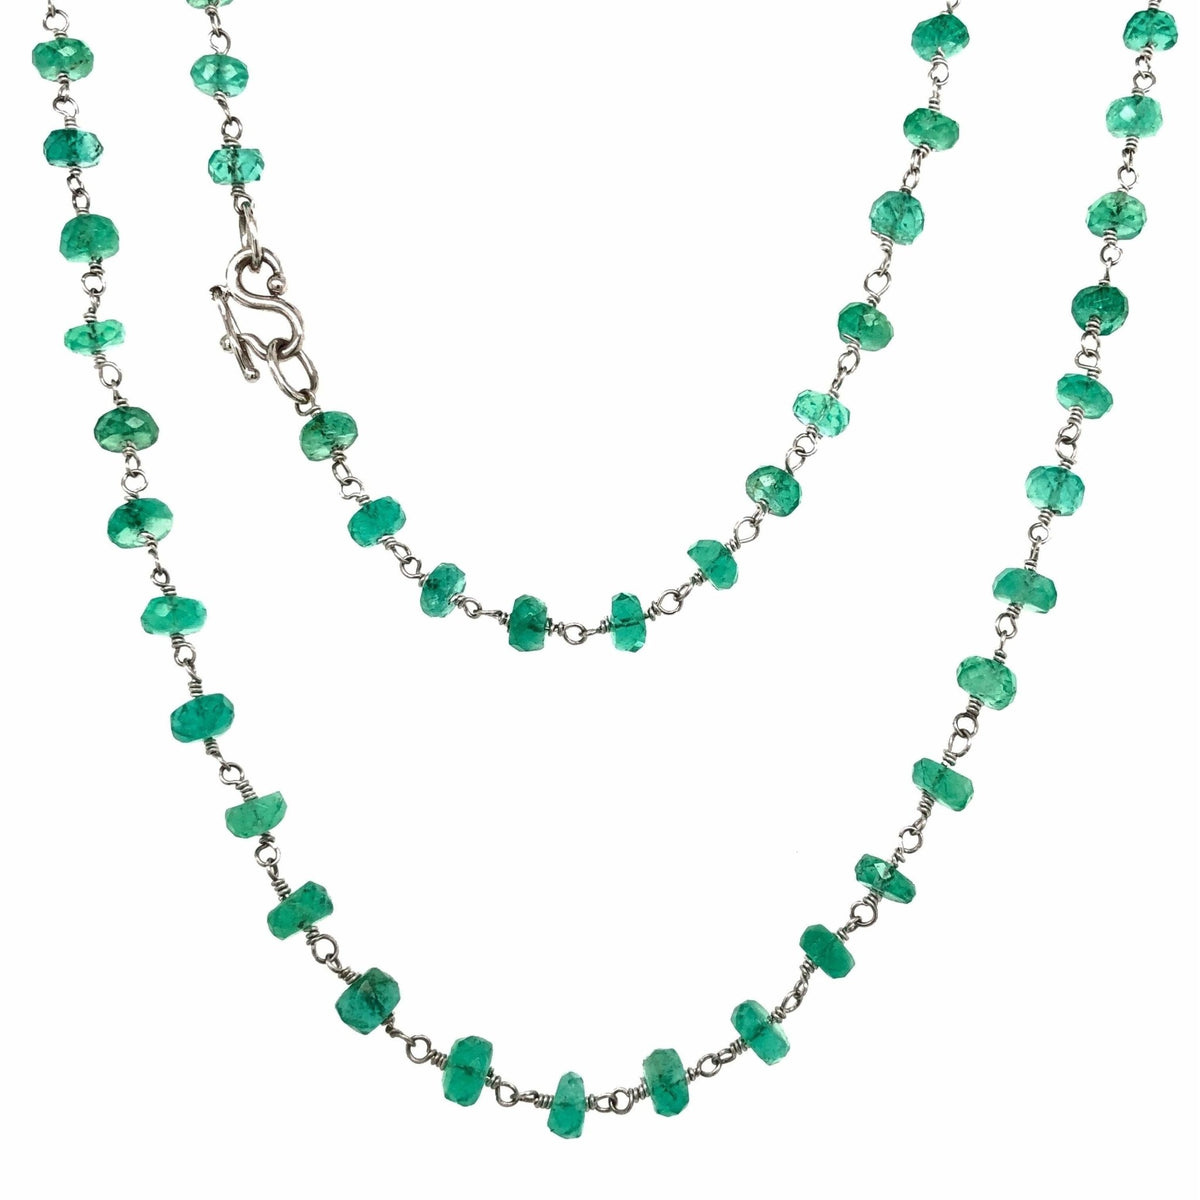 Irish Channel Emerald Chain - Ashleigh Branstetter®